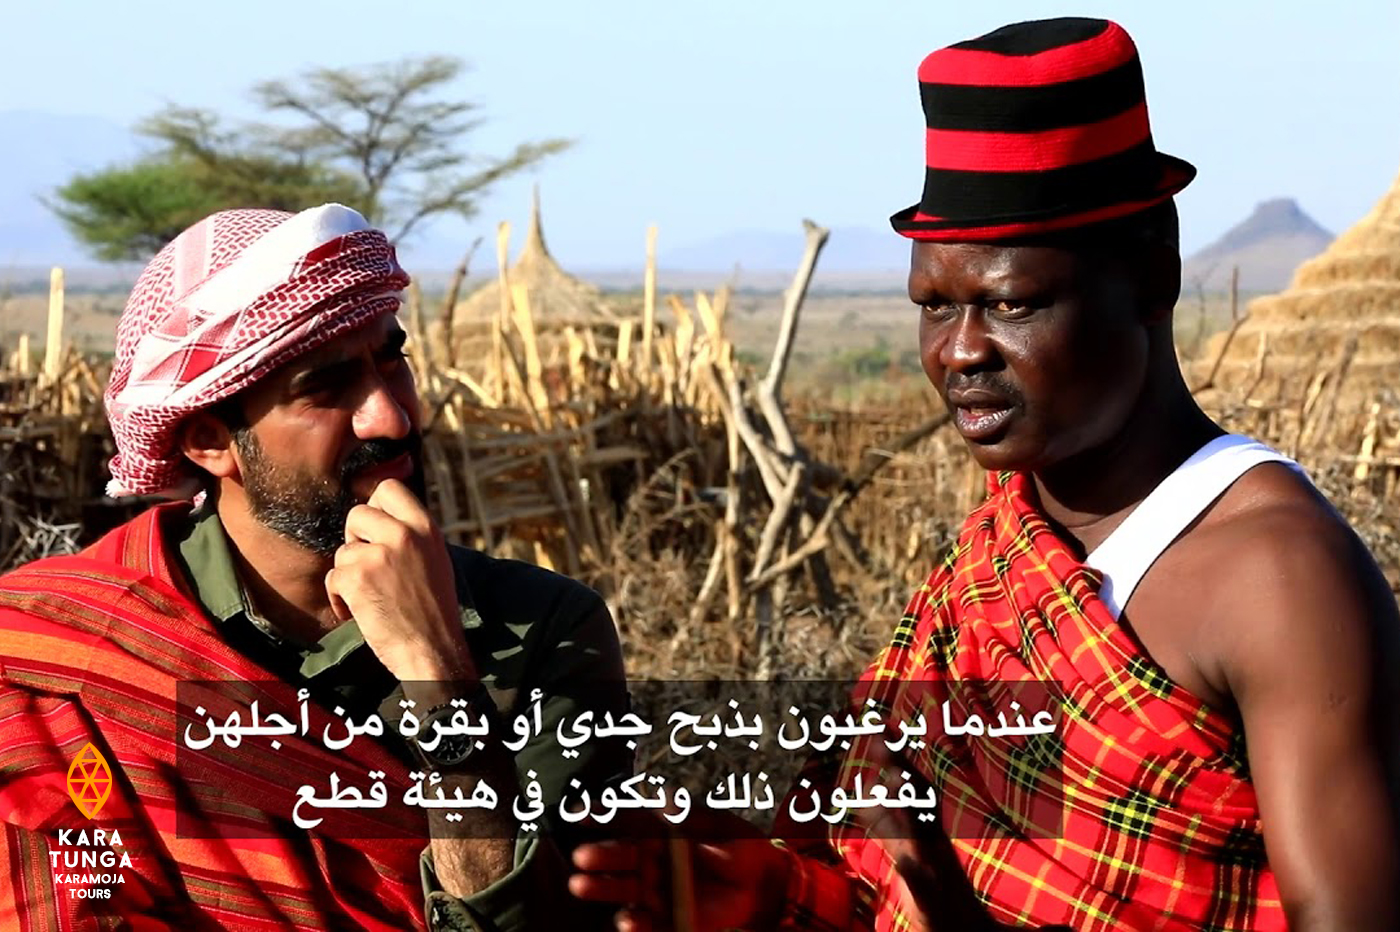 kara-tunga-karamoja-uganda-travel-tours-dubai-one-duroob-tv